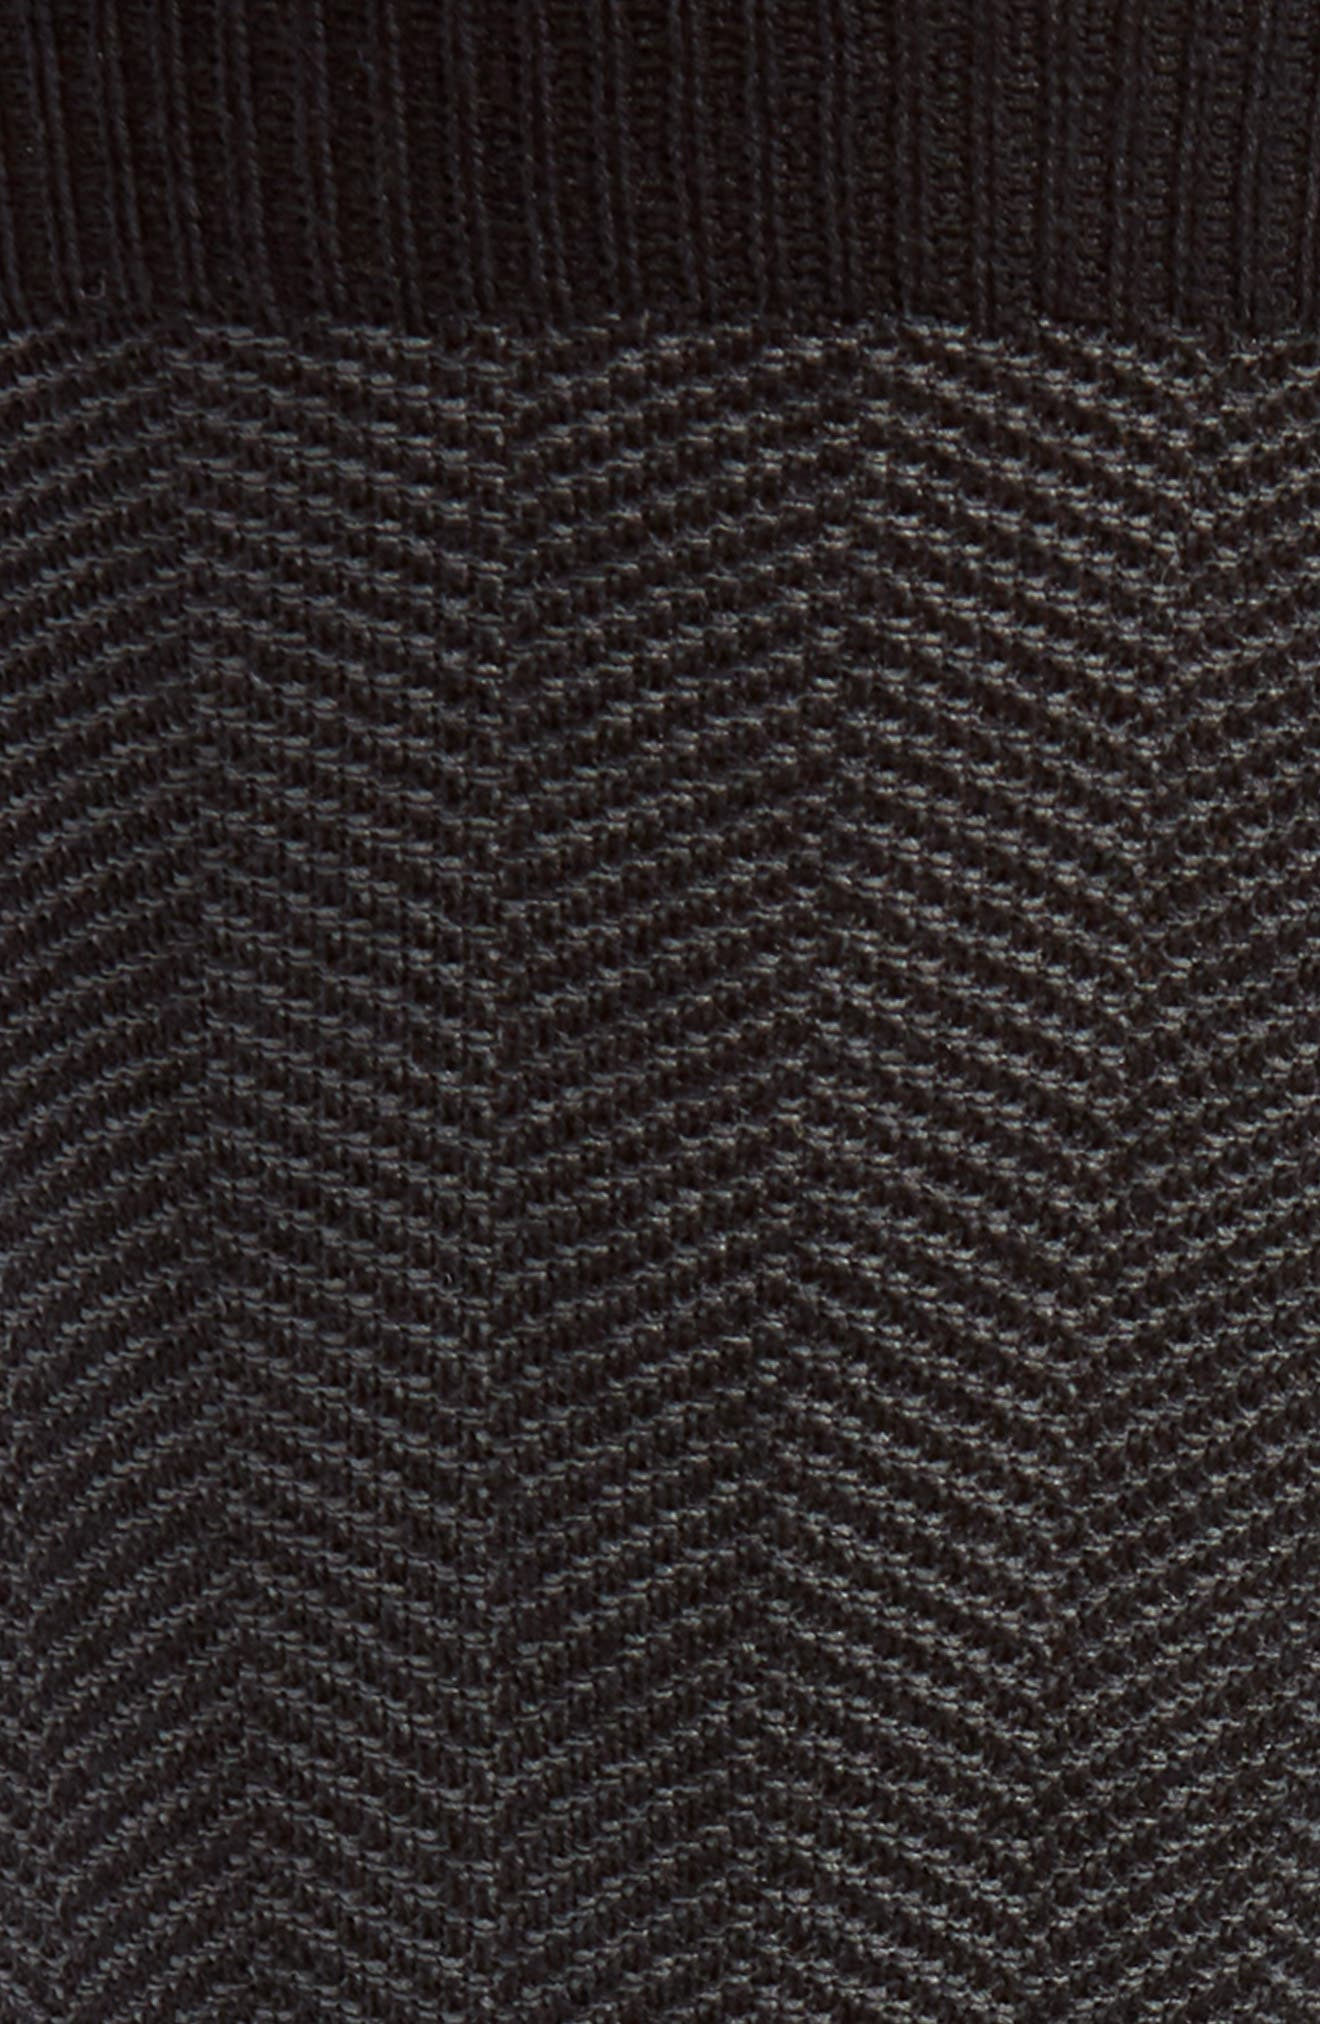 Herringbone Texture Crew Socks,                             Alternate thumbnail 2, color,                             Black